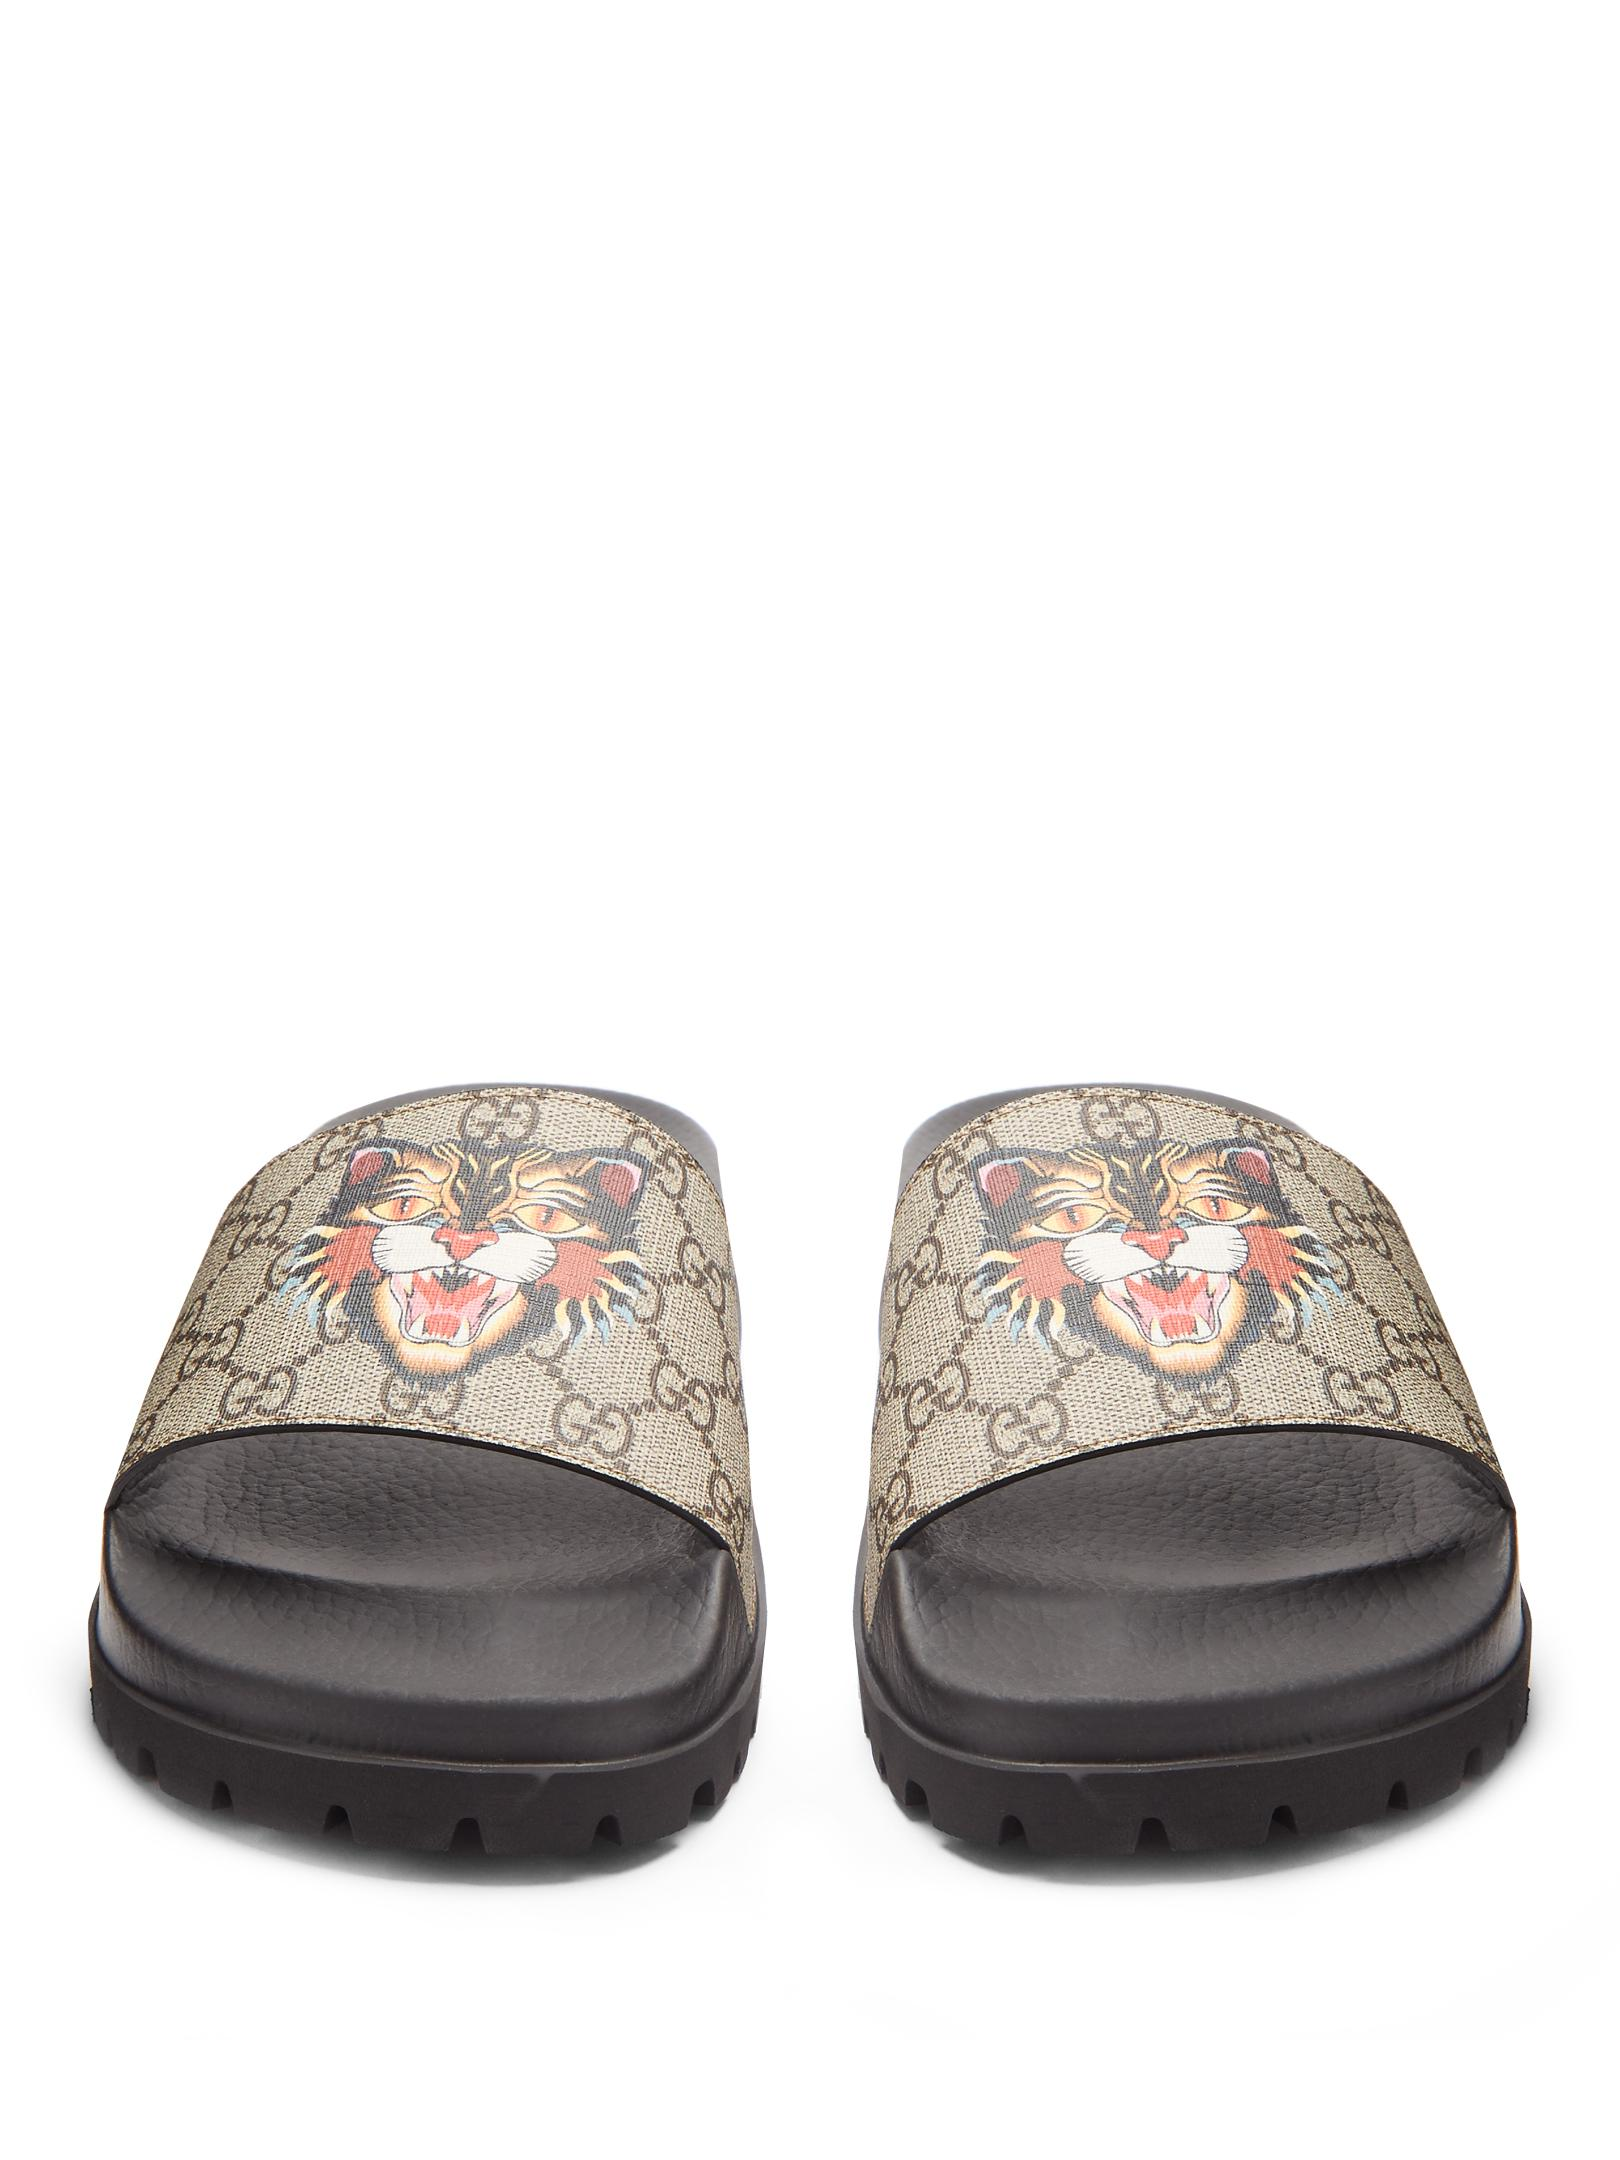 5f2e5df8aeda Lyst - Gucci Pursuit Track Angry Cat-print Gg Supreme Slides for Men